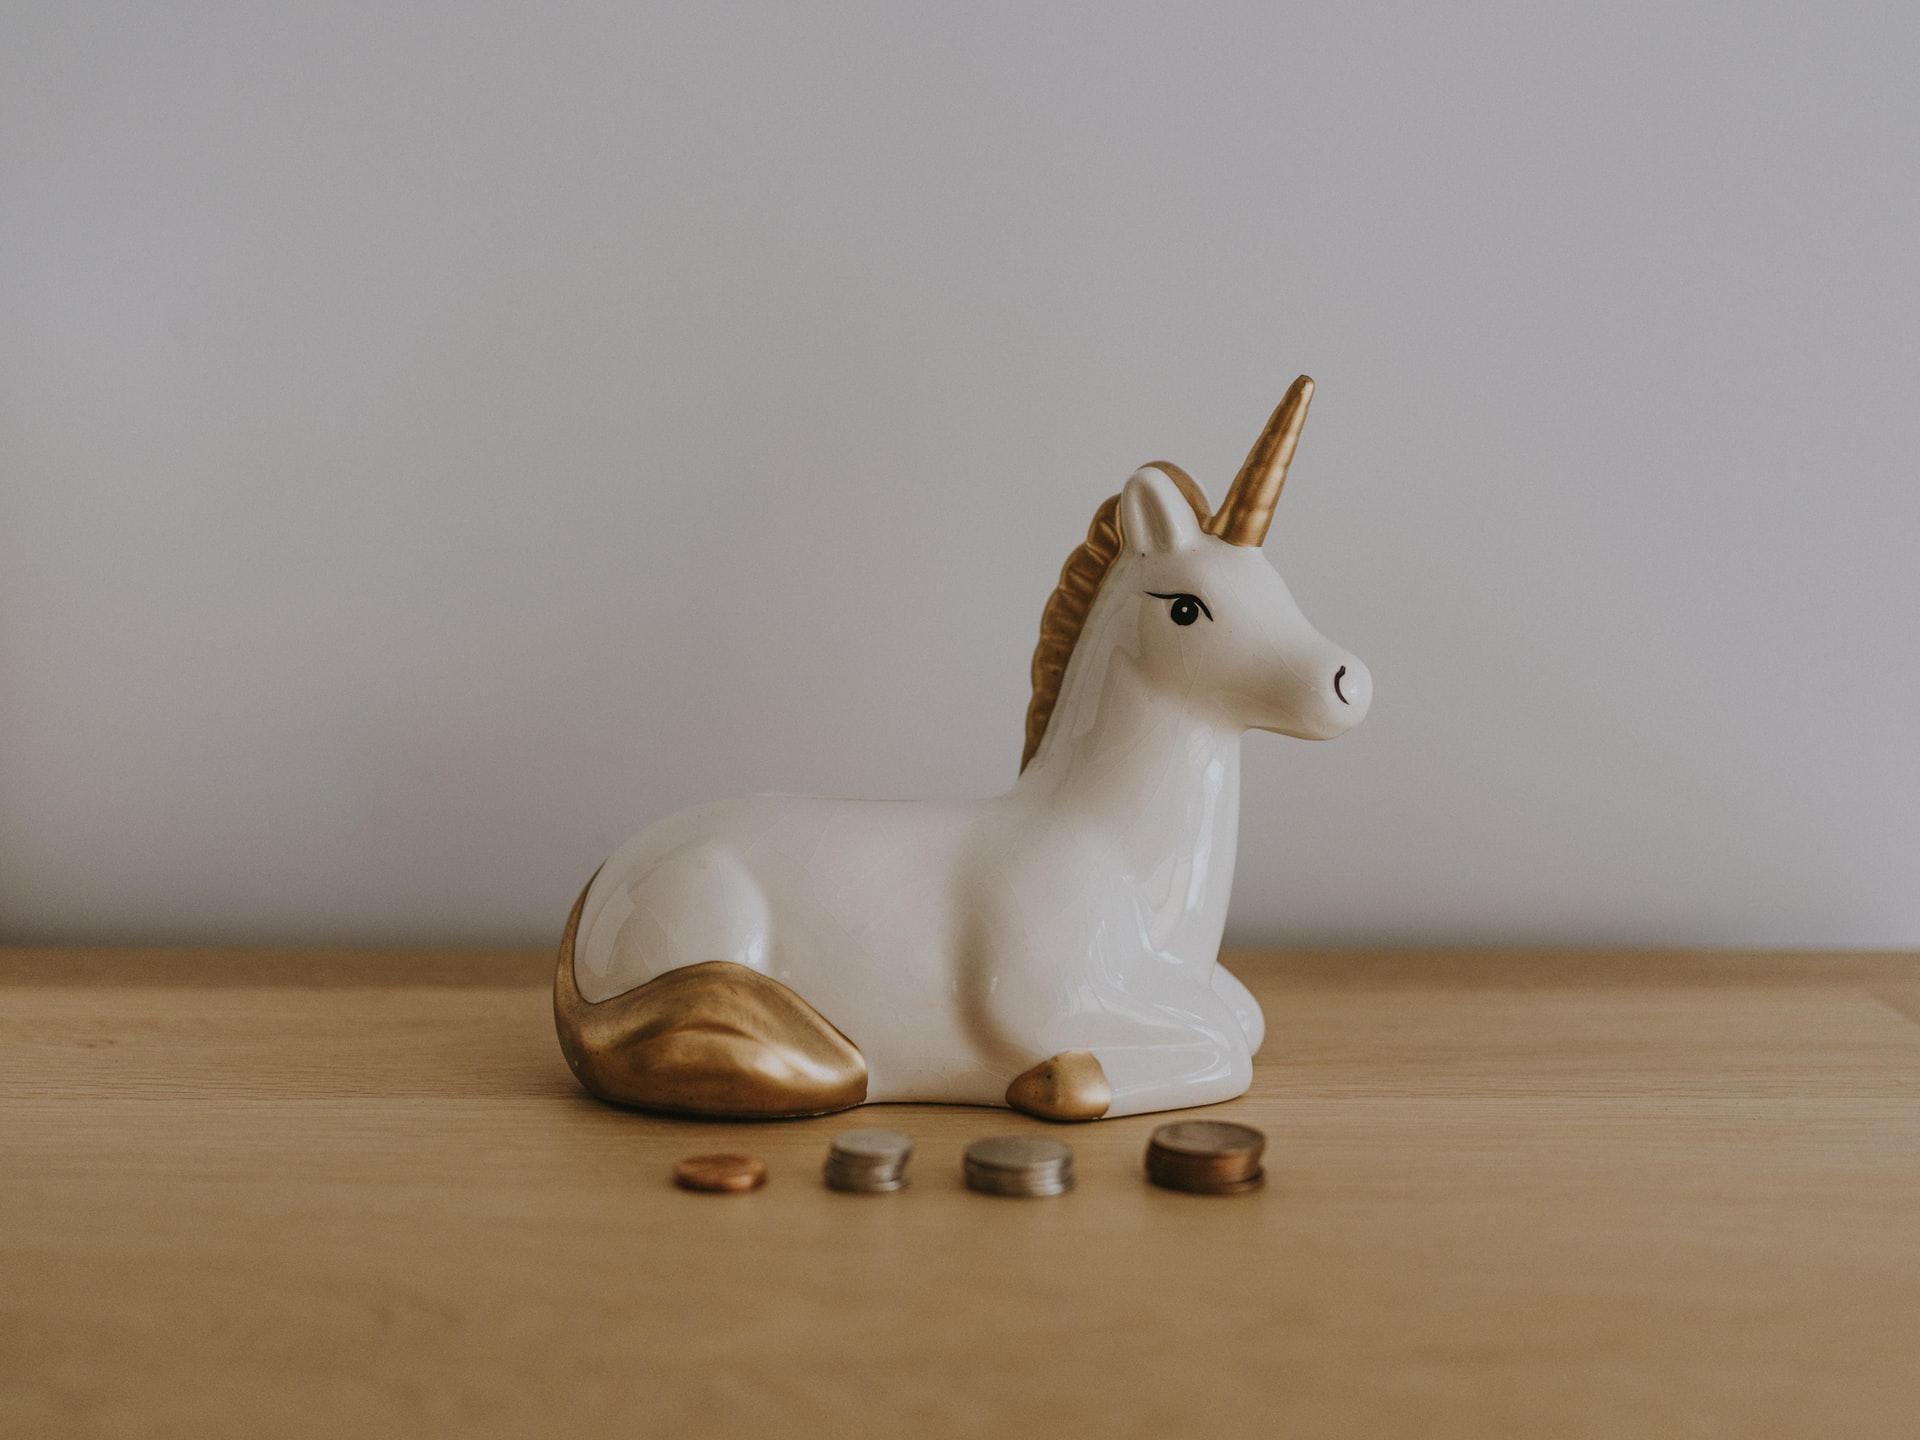 Unicorn coin bank with money in front of it